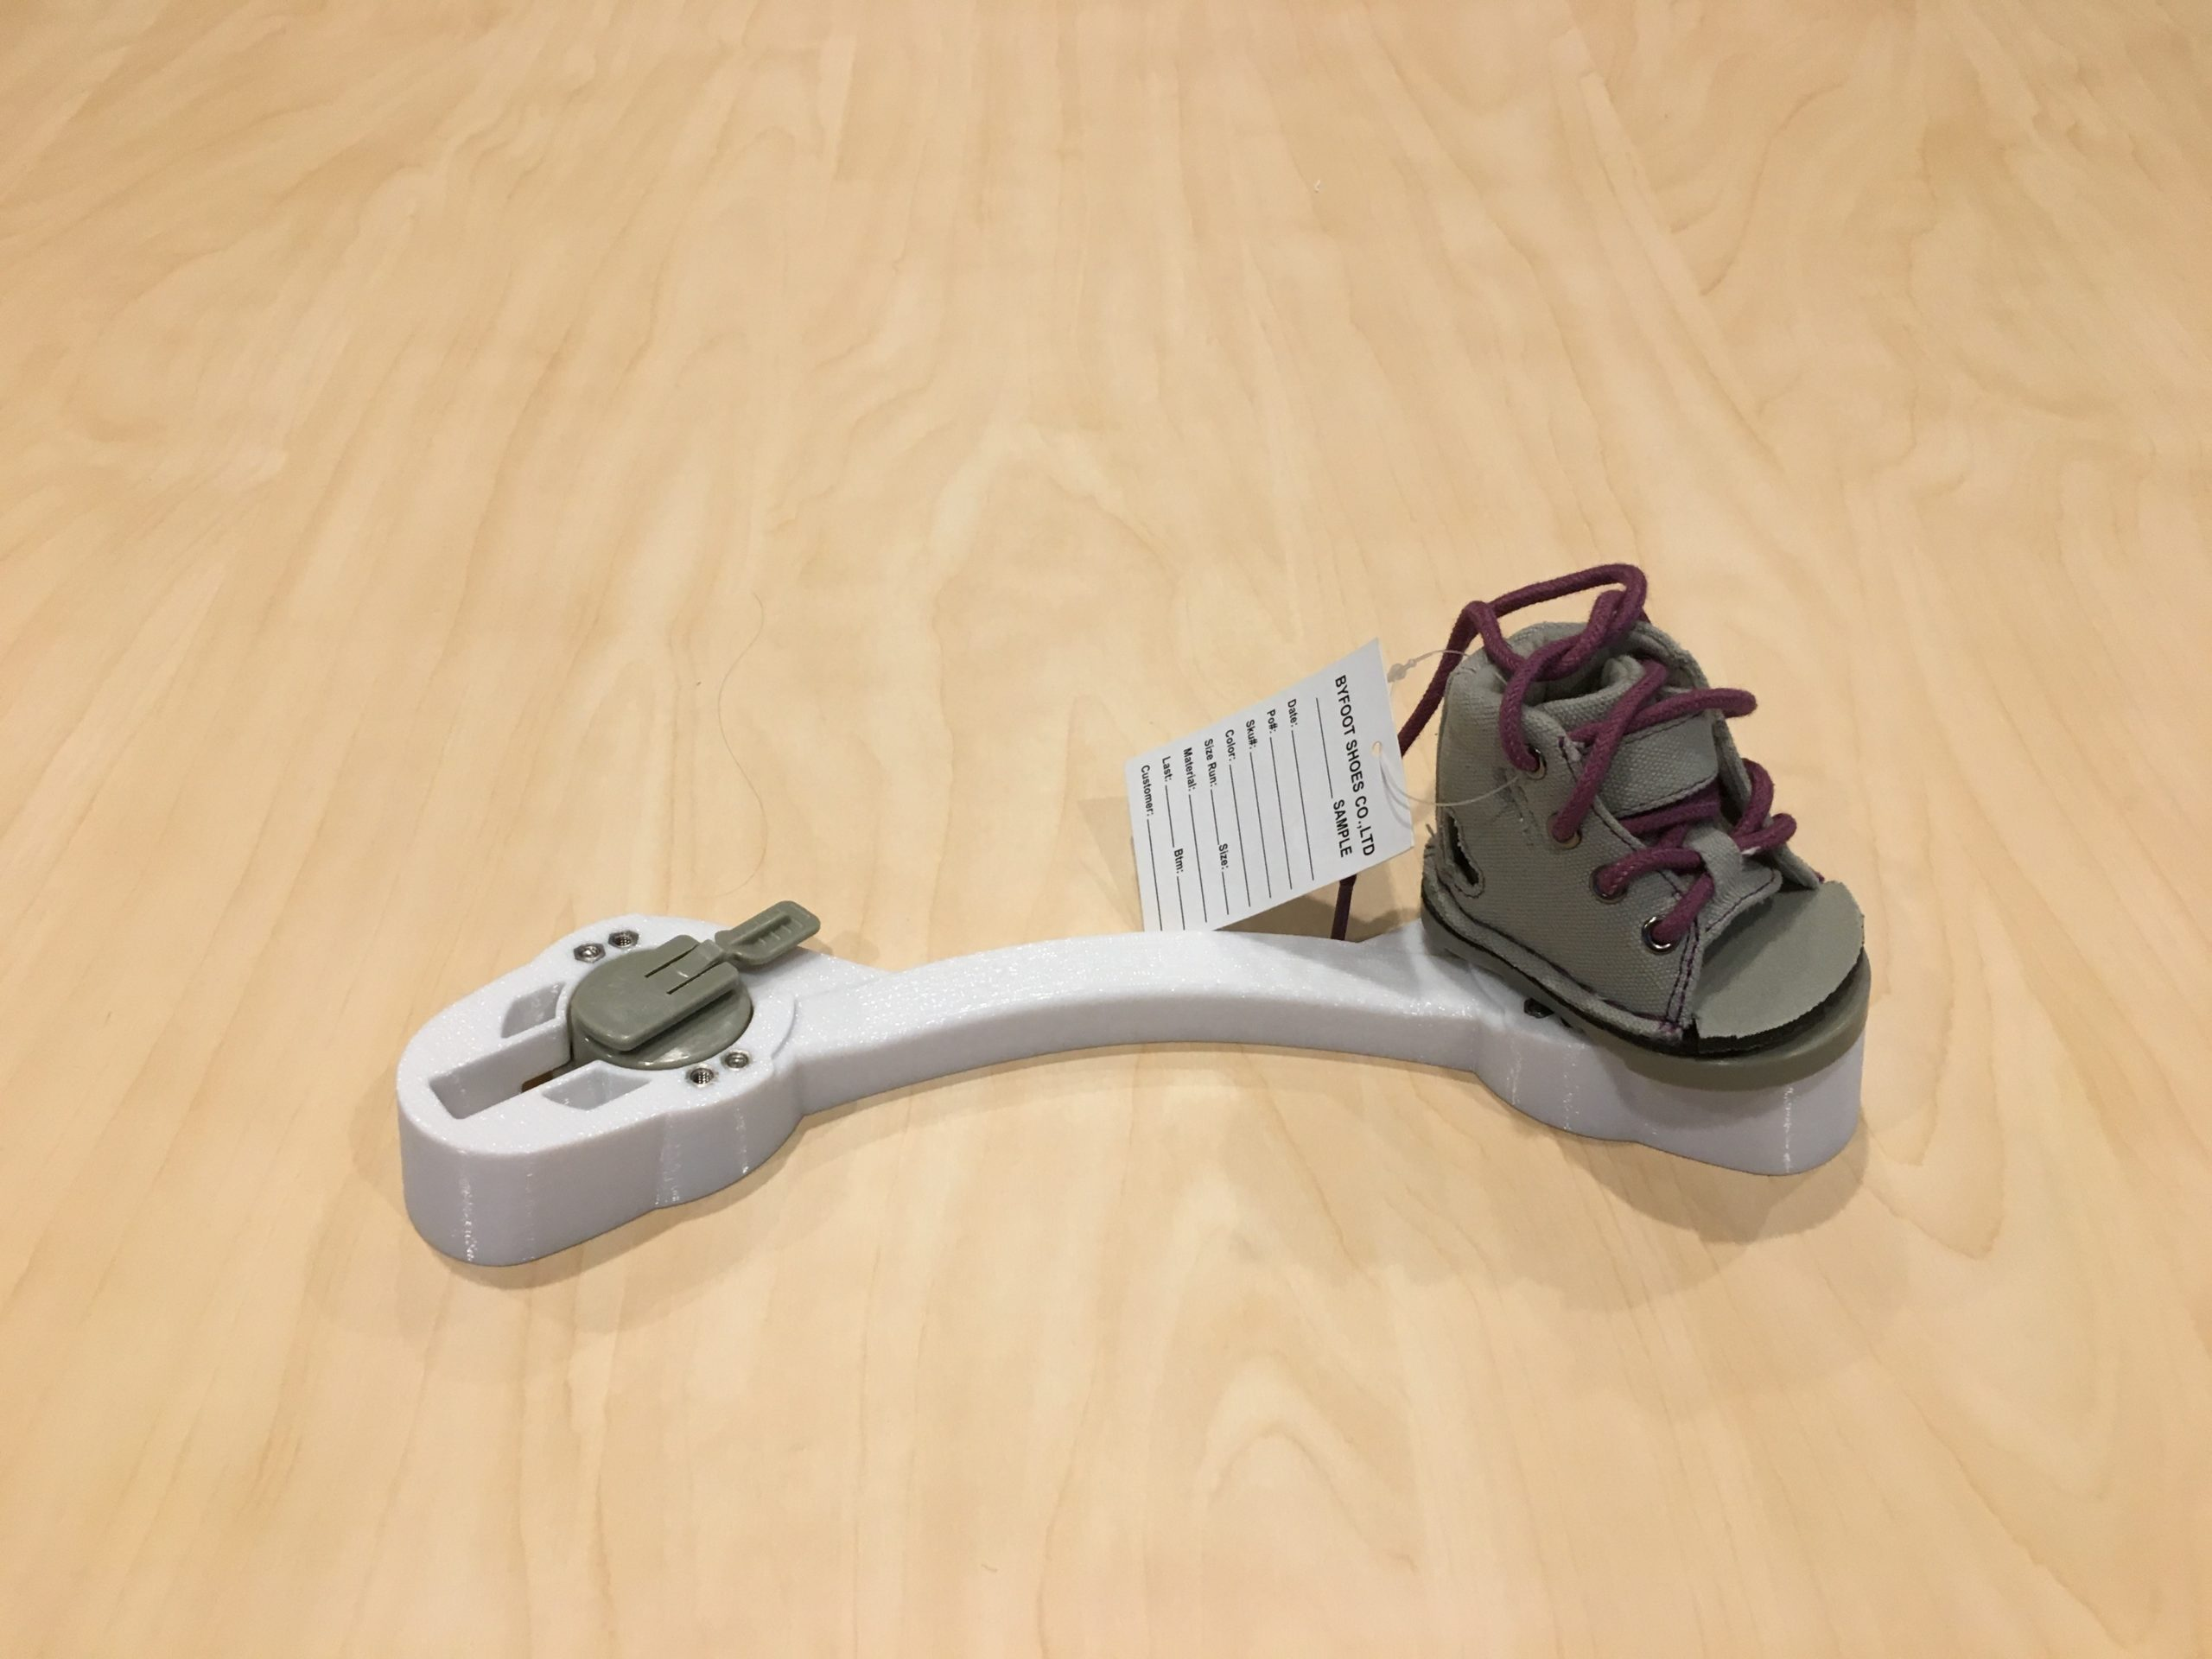 smaller bar and size zero shoe on table